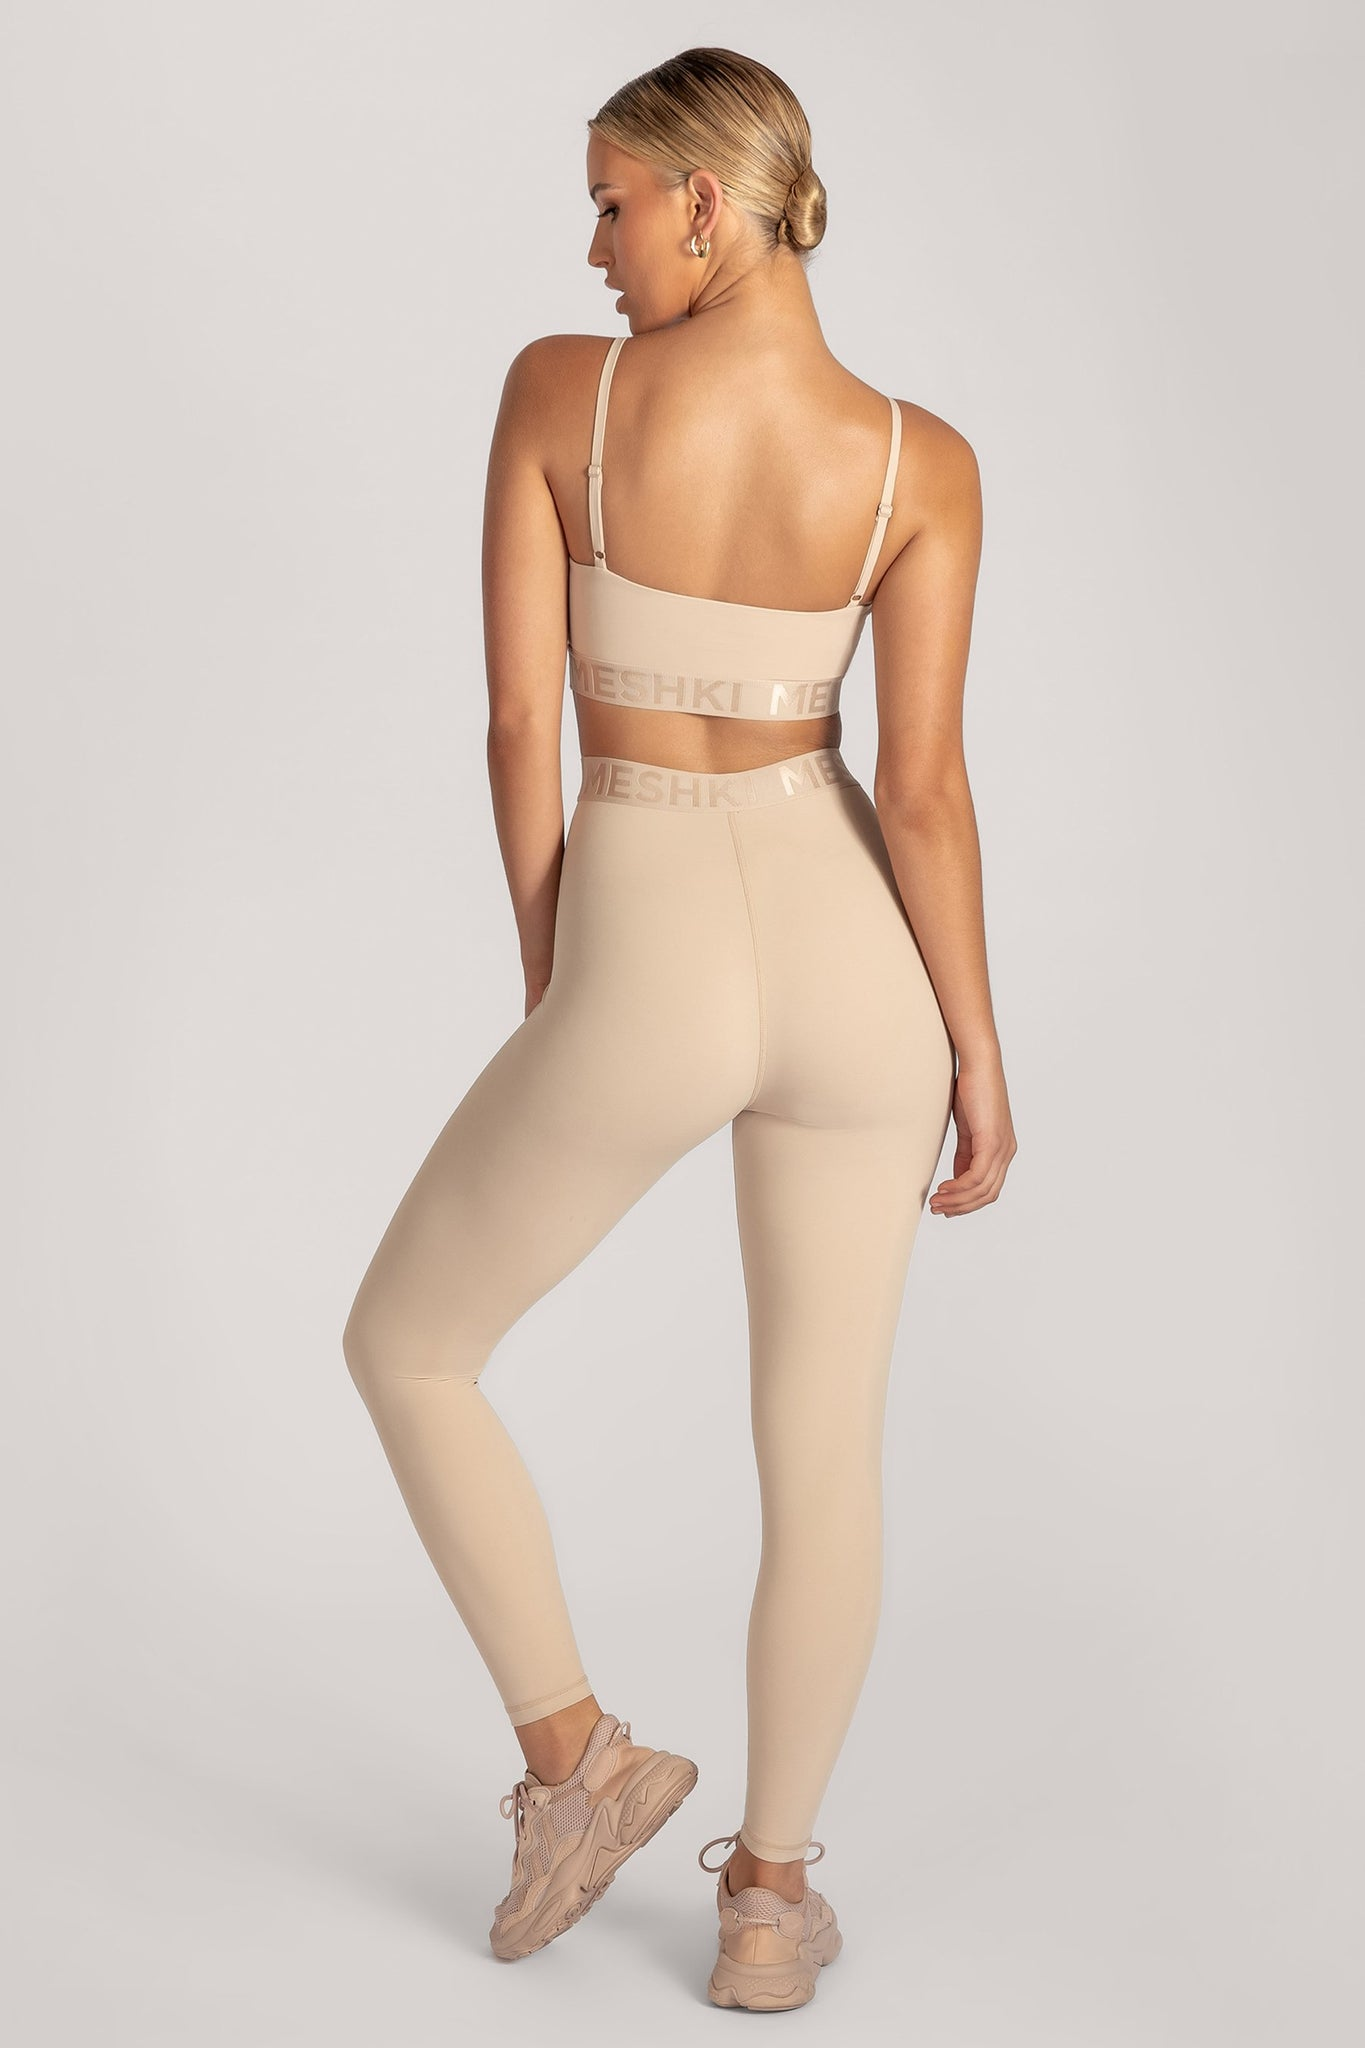 Acacia Meshki Full Length Leggings - Nude - MESHKI